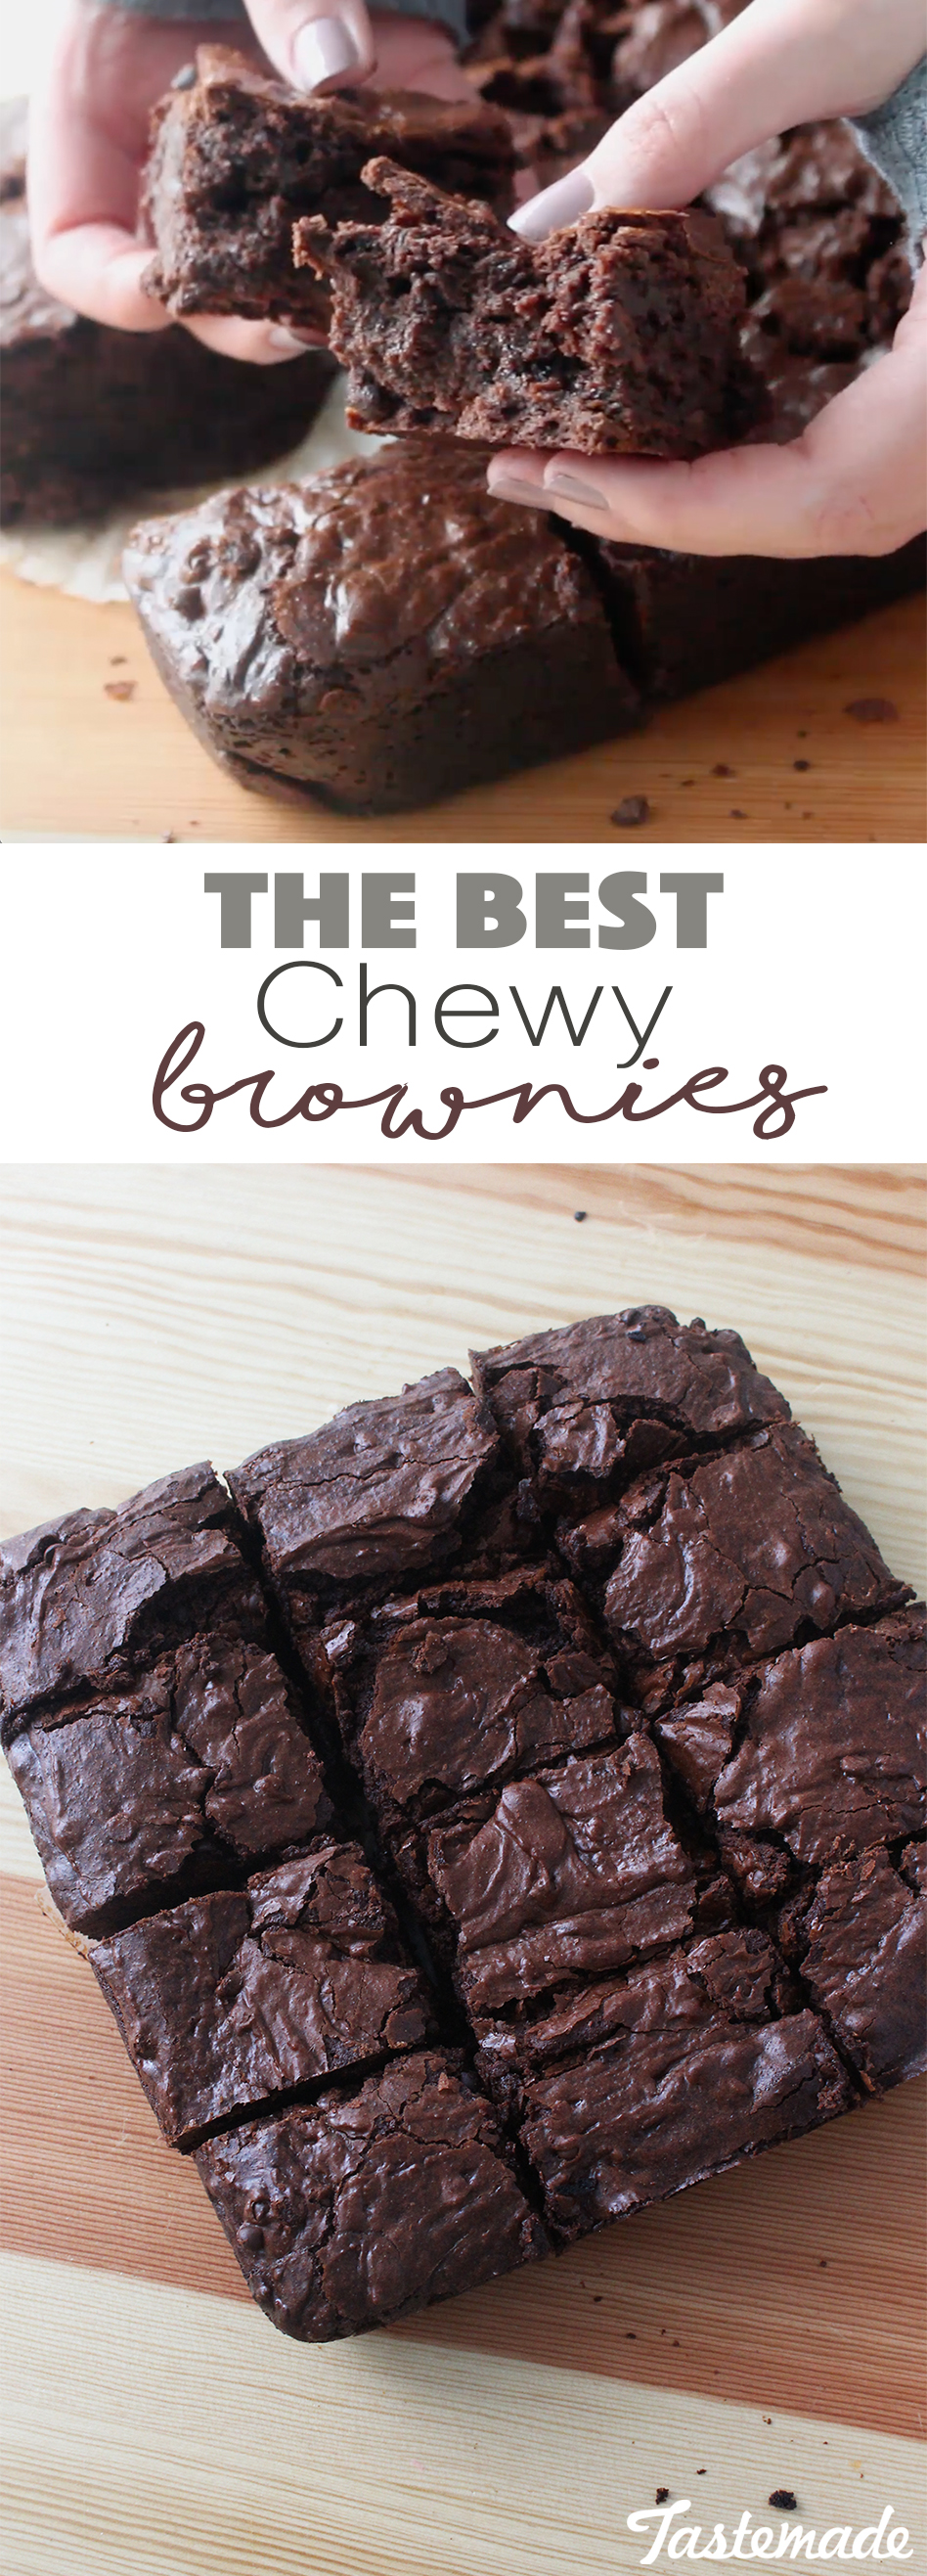 These brownies are so chewy, moist and perfect for any chocolate craving!